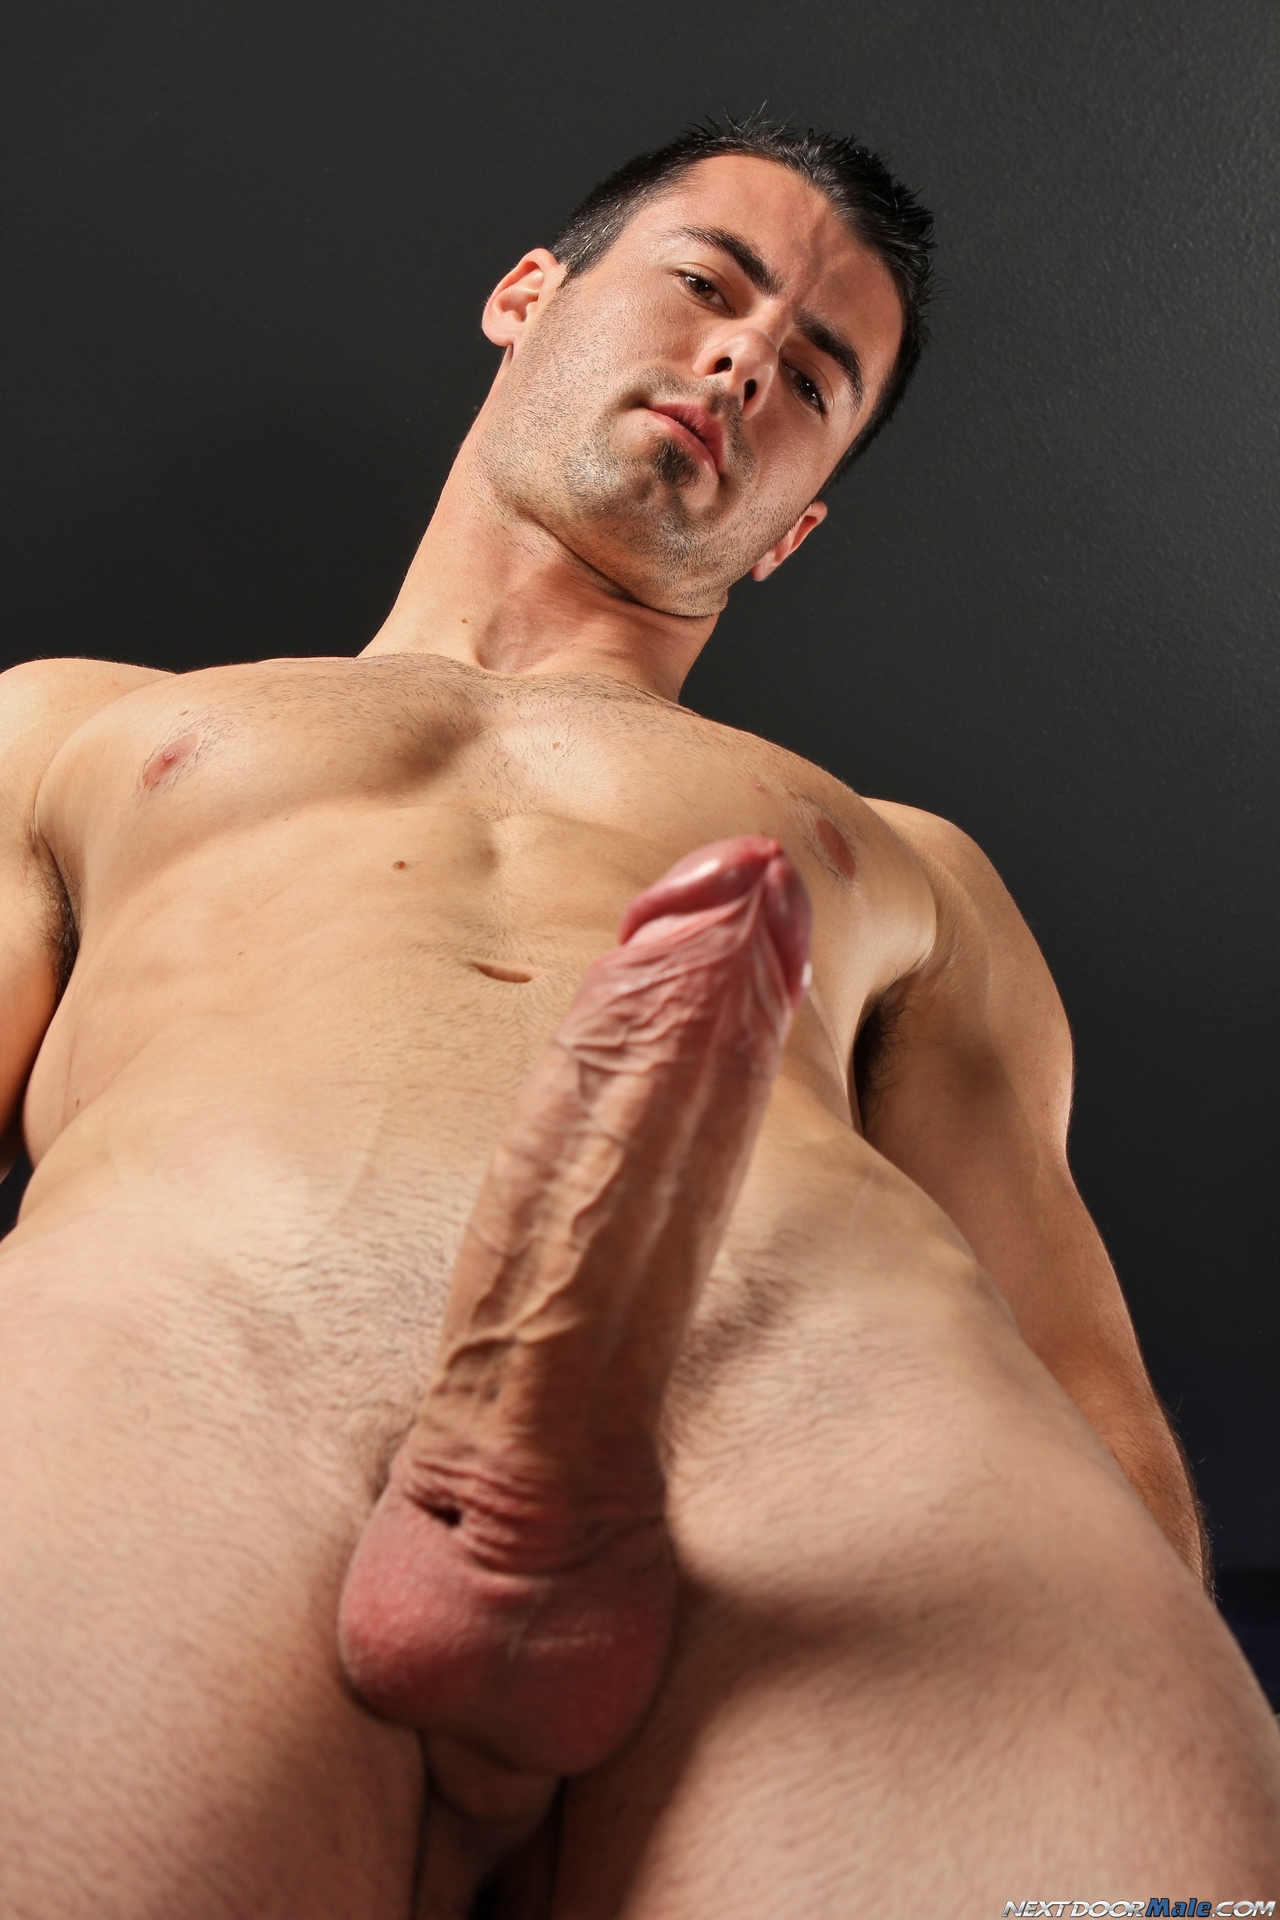 Rupert recommend best of porn anal huge gay cock